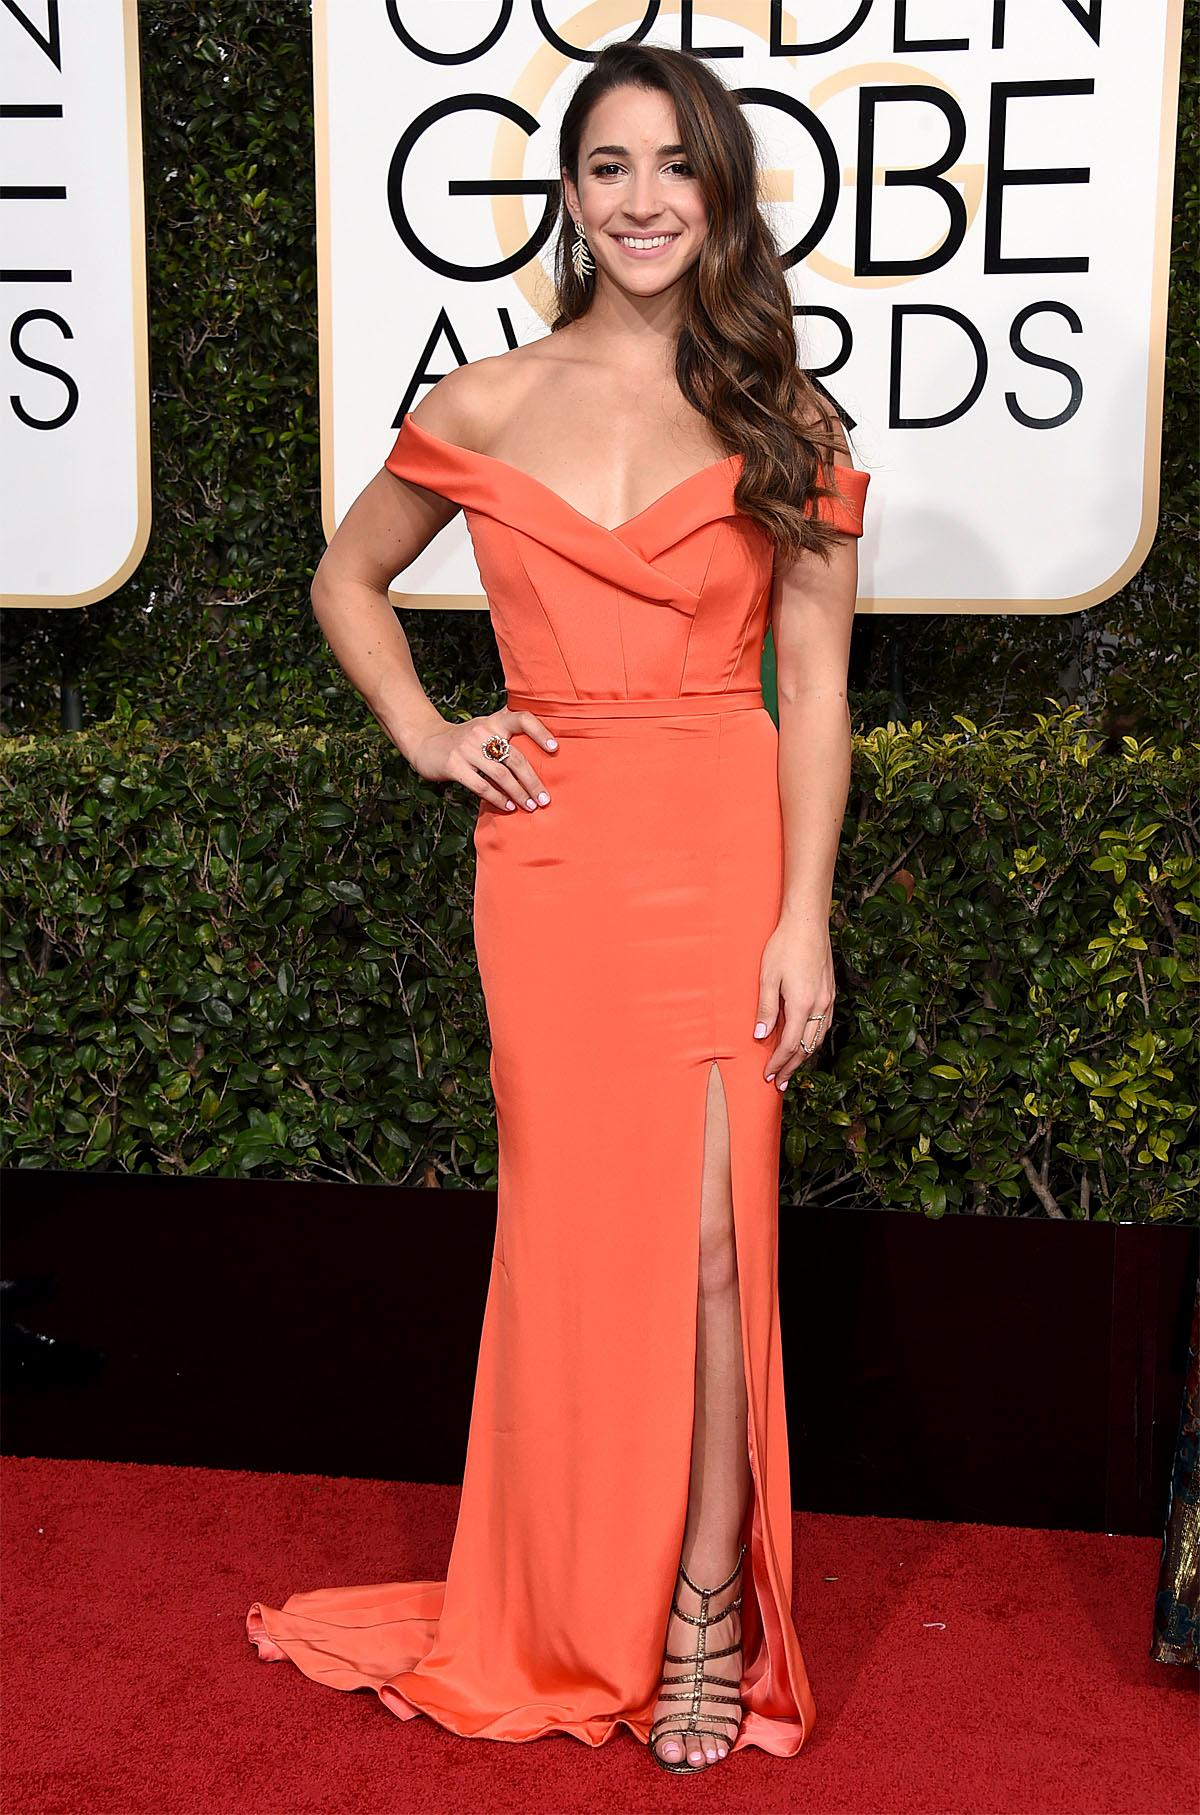 Aly Raisman arrives at the 74th annual Golden Globe Awards at the Beverly Hilton Hotel on Sunday, Jan. 8, 2017, in Beverly Hills, Calif. (Photo by Jordan Strauss/Invision/AP)